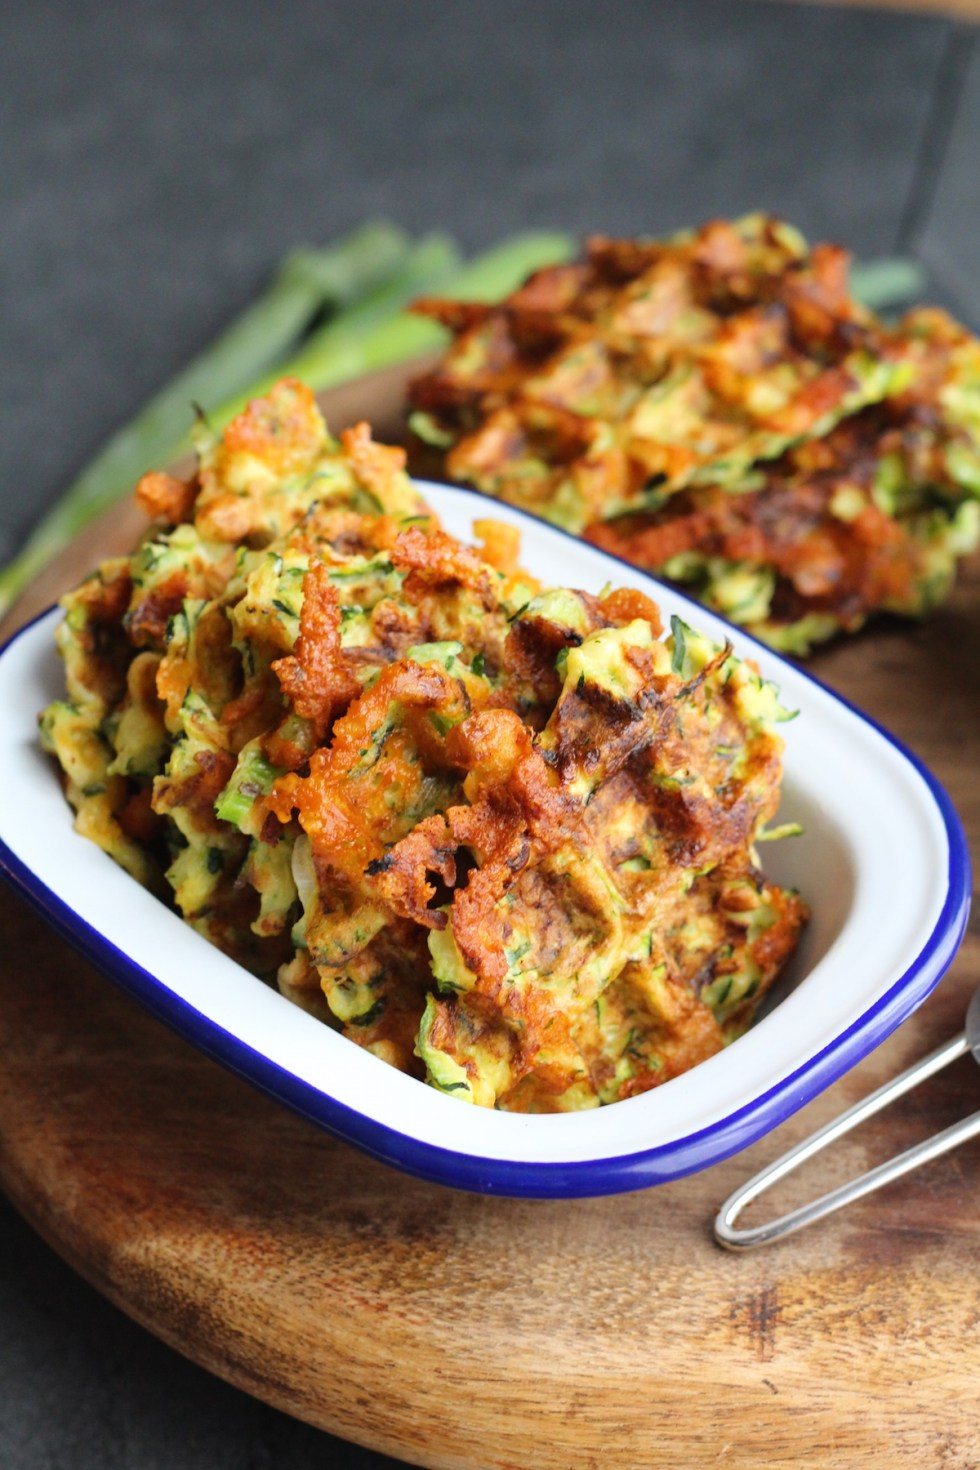 Courgette waffles. These make an awesome snack or side